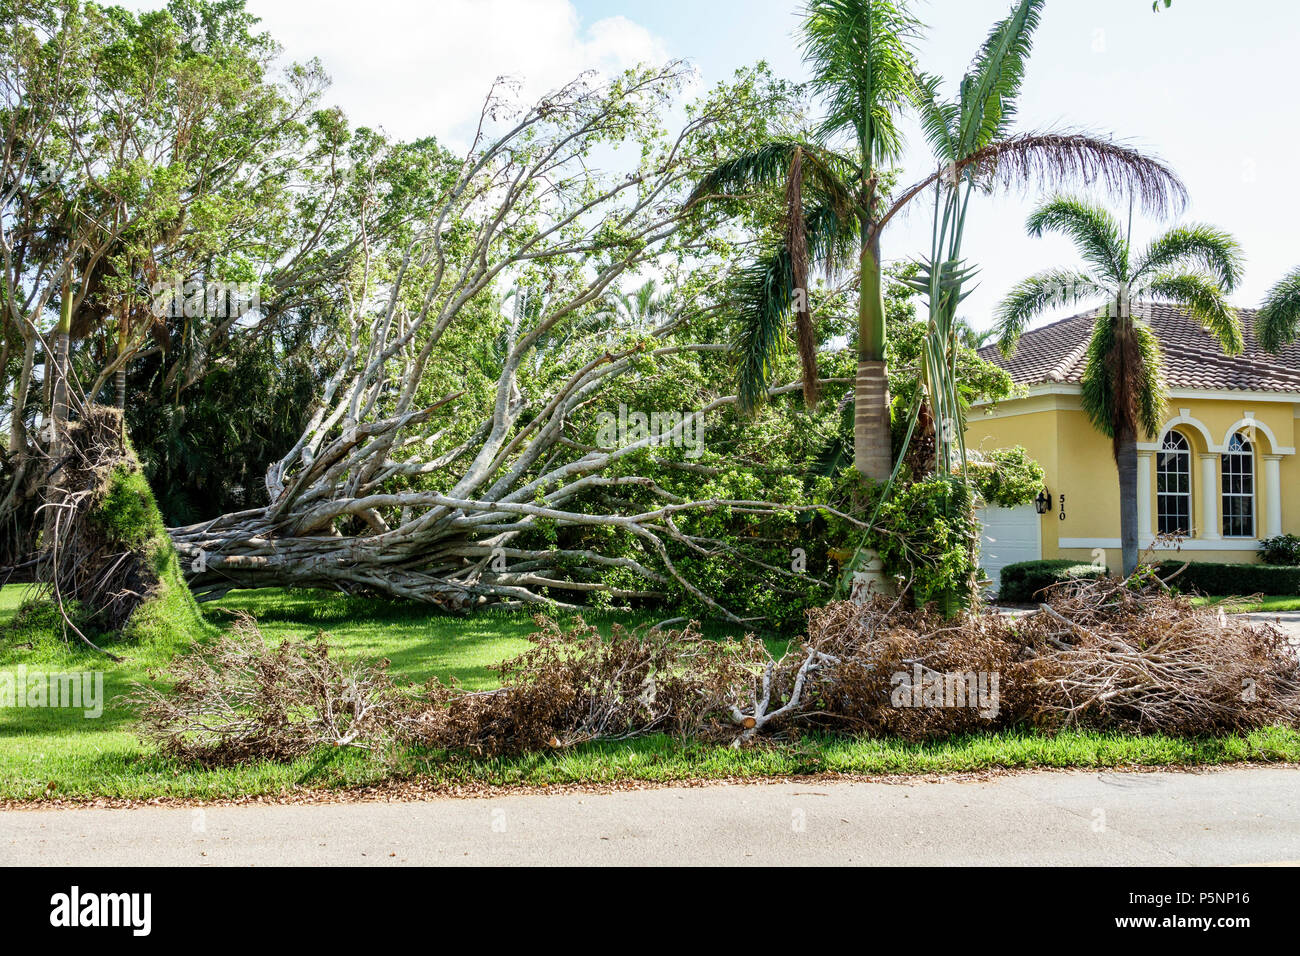 Naples Florida Crayton Road house home Hurricane Irma wind storm damage destruction aftermath fallen toppled over large tree root system lawn - Stock Image